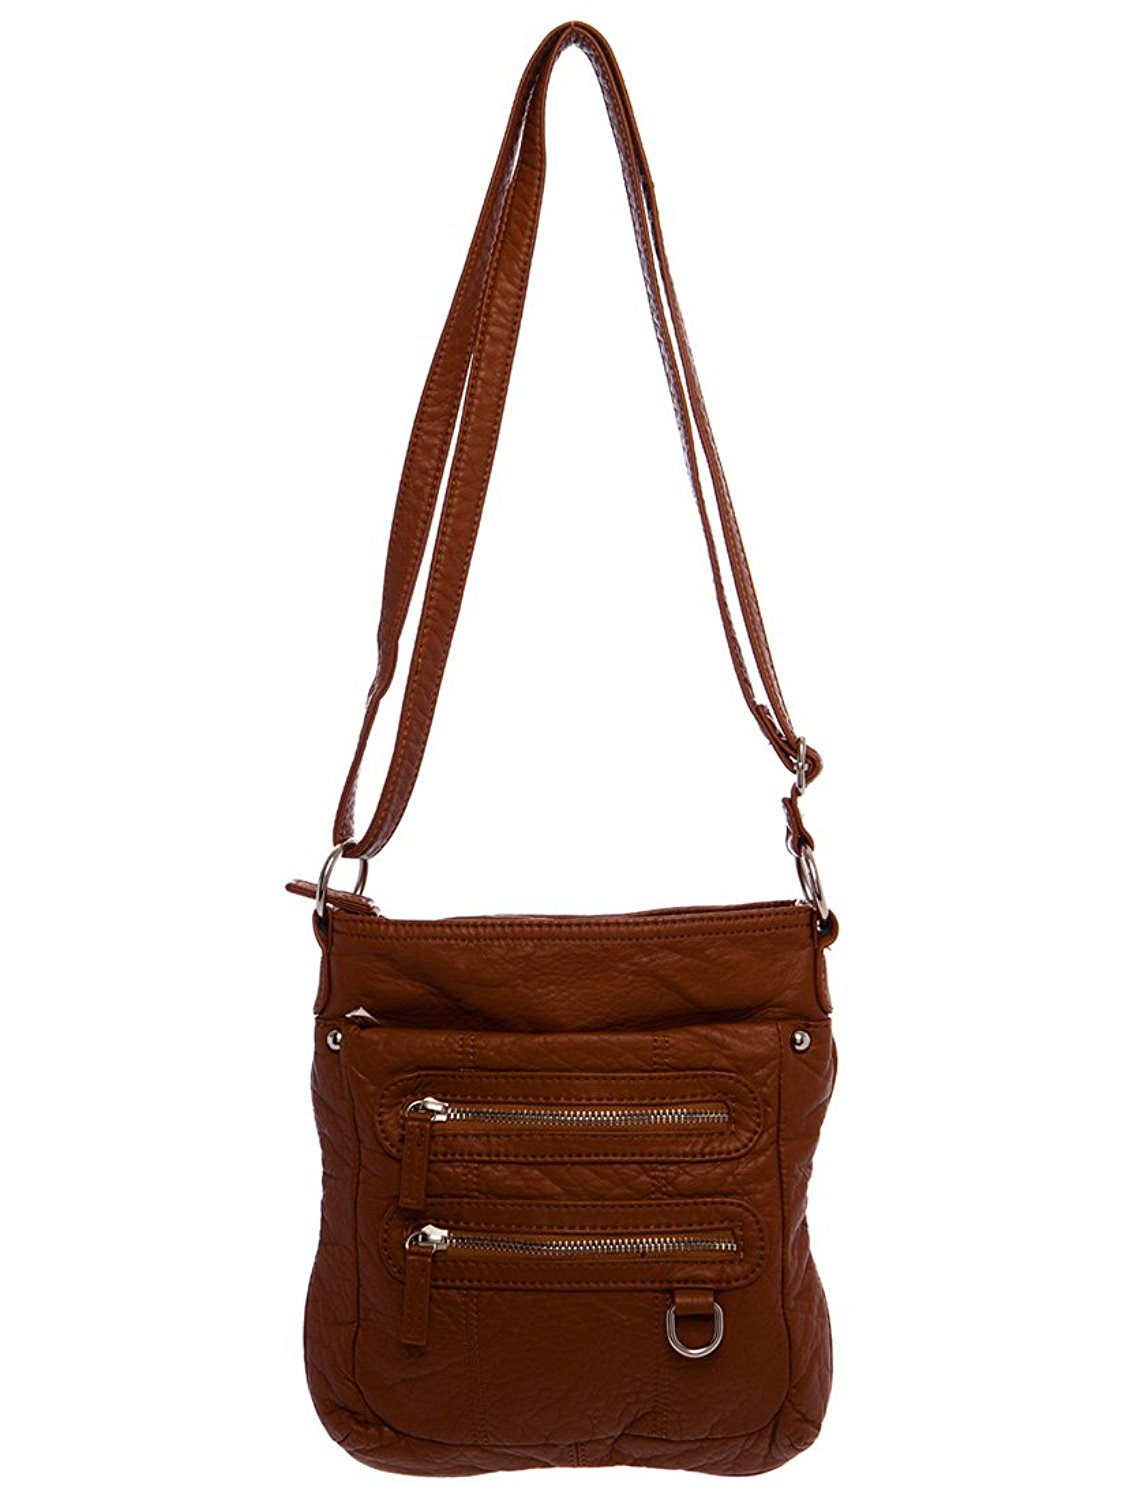 Get Quotations Soft Vegan Leather Handbag Crossbody The Willa By Ampere Creations